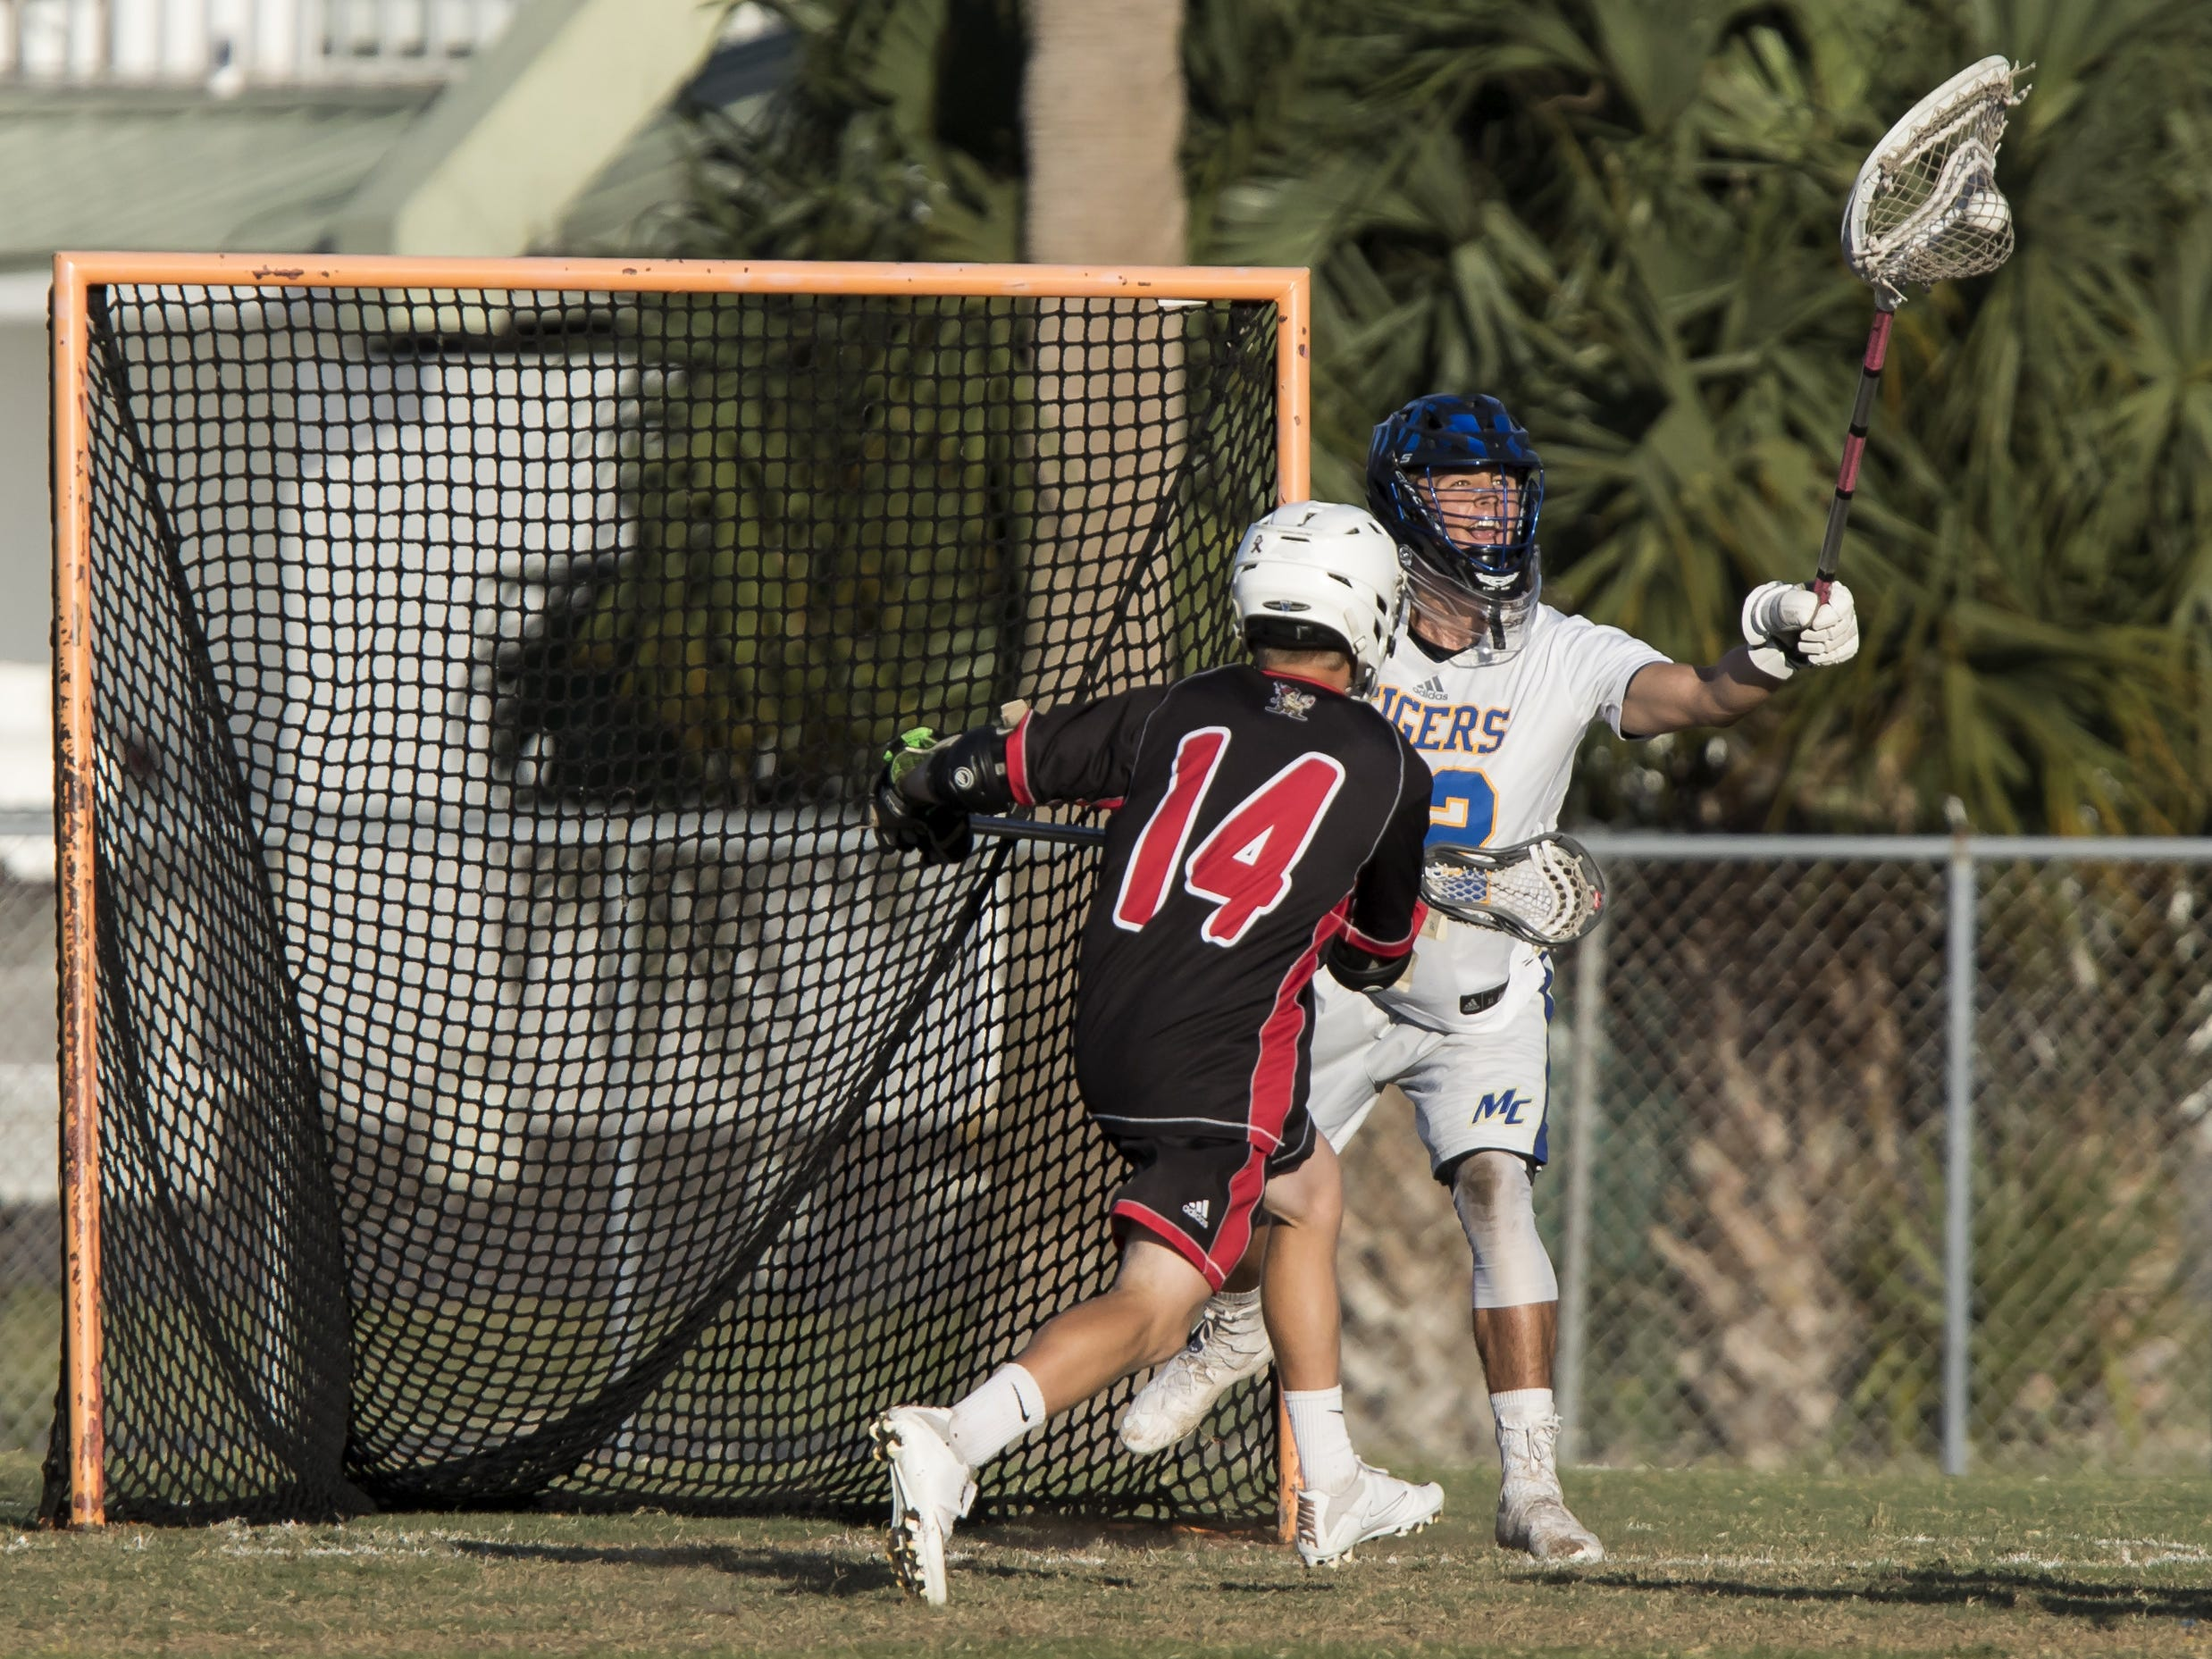 Martin County goalie James Crighton (right) catches Vero Beach player Cameron Smith's shot during the high school boys lacrosse game Tuesday, April 16, 2019, at the Citrus Bowl in Vero Beach.